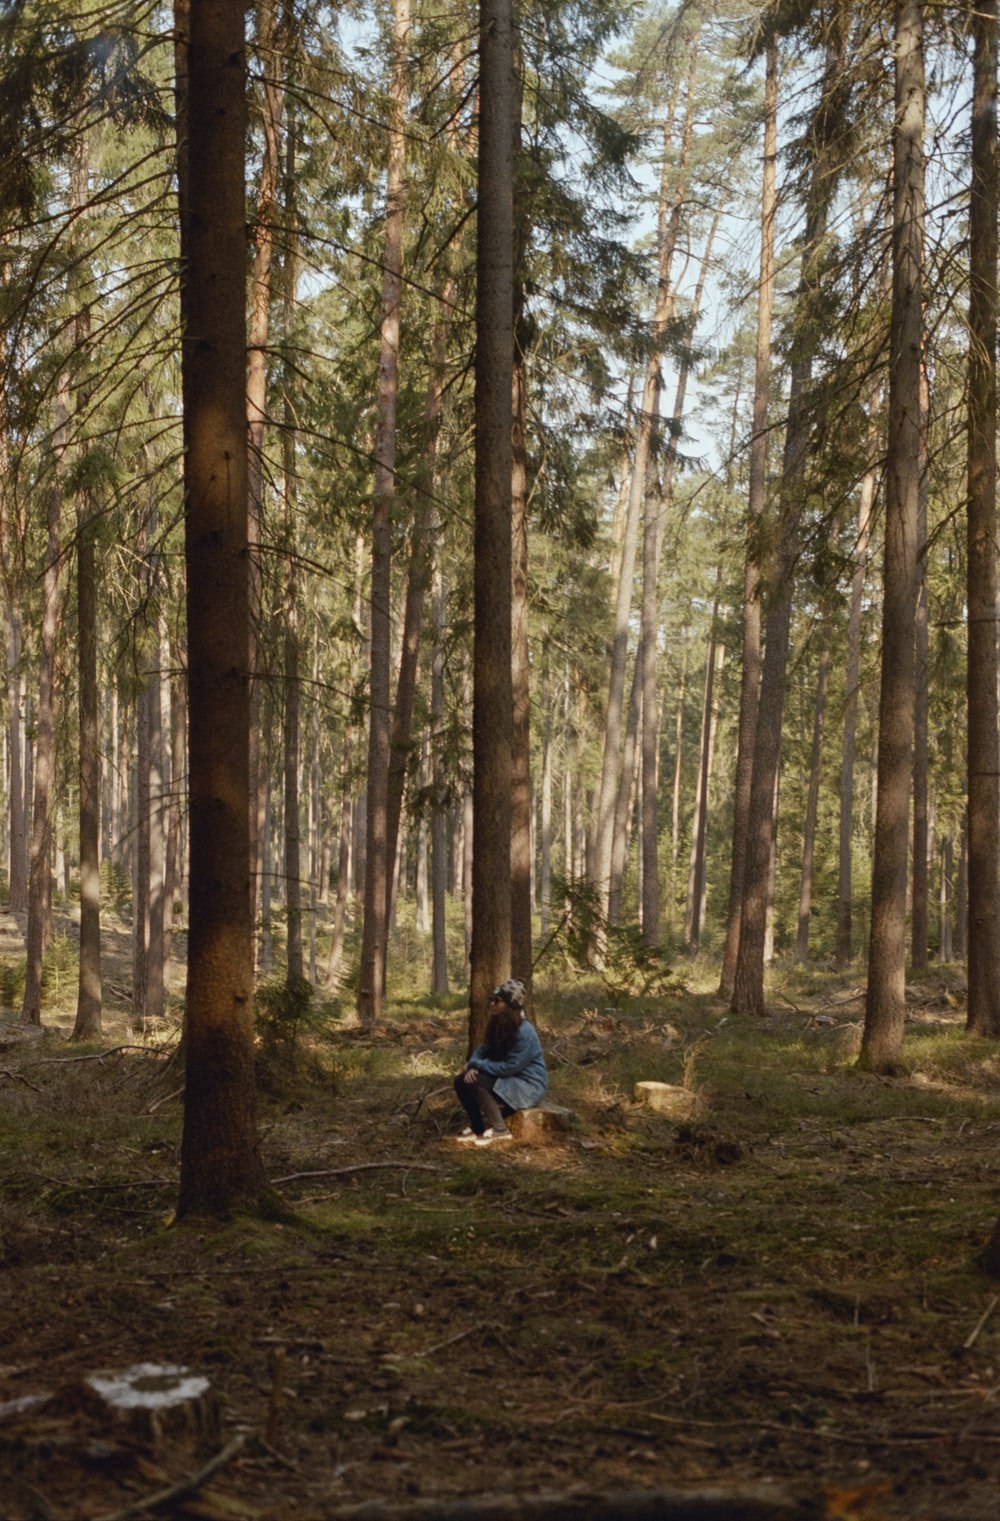 person in black jacket sitting on ground surrounded by trees during daytime